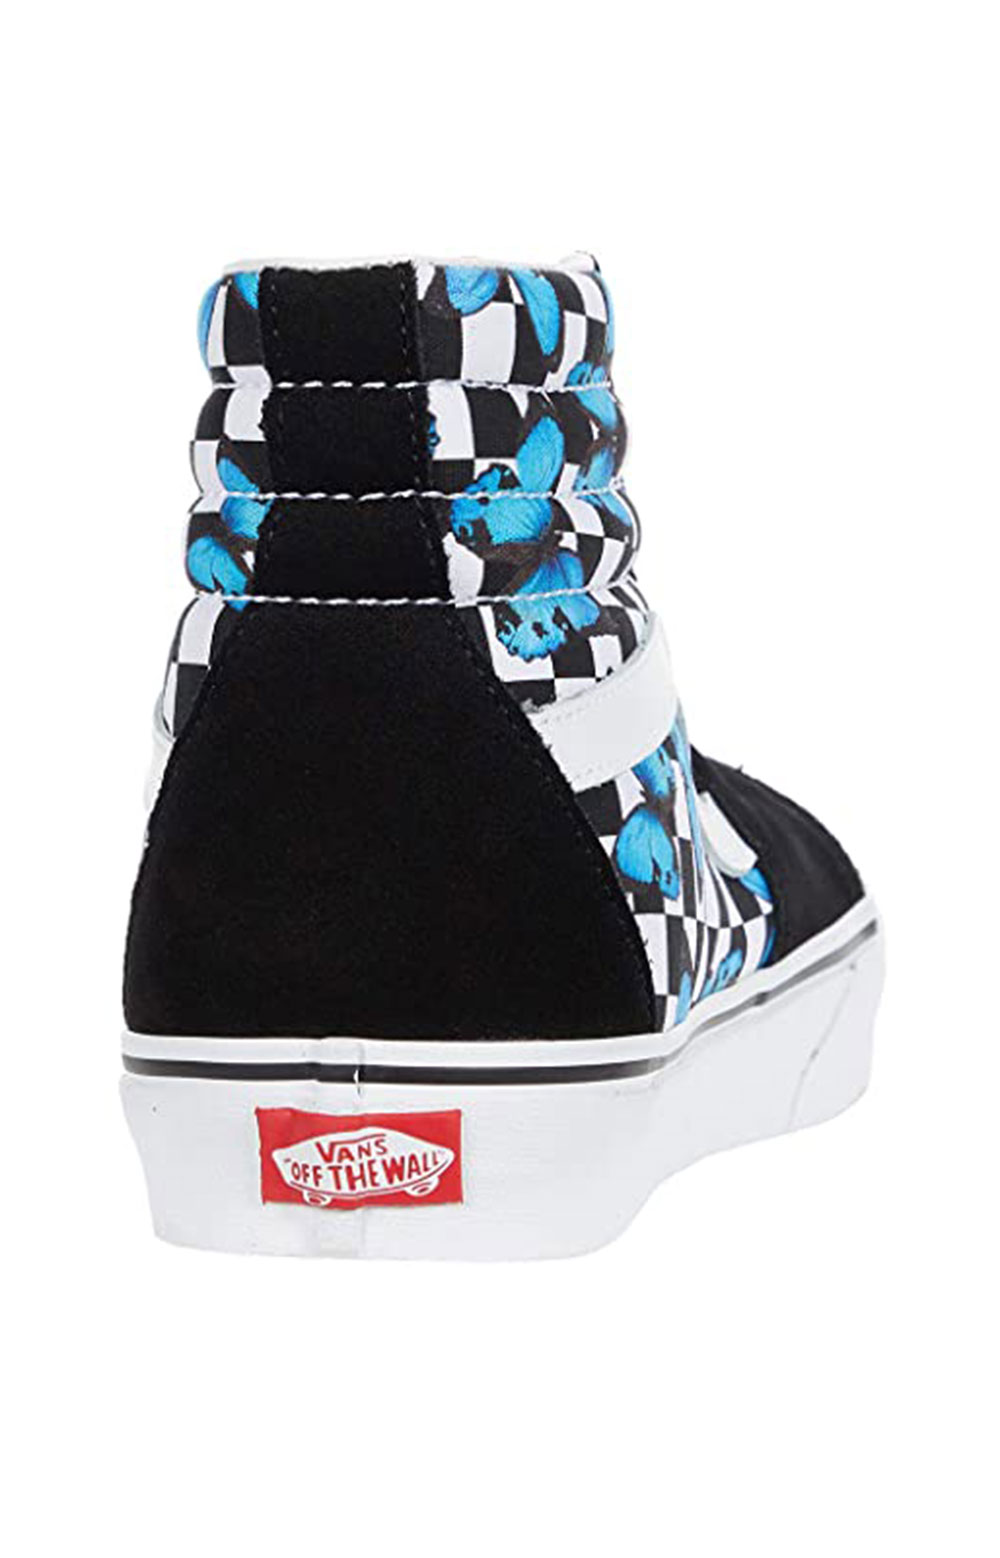 (HXV5KK) Butterfly Checkerboard Sk8-Hi Shoes  6